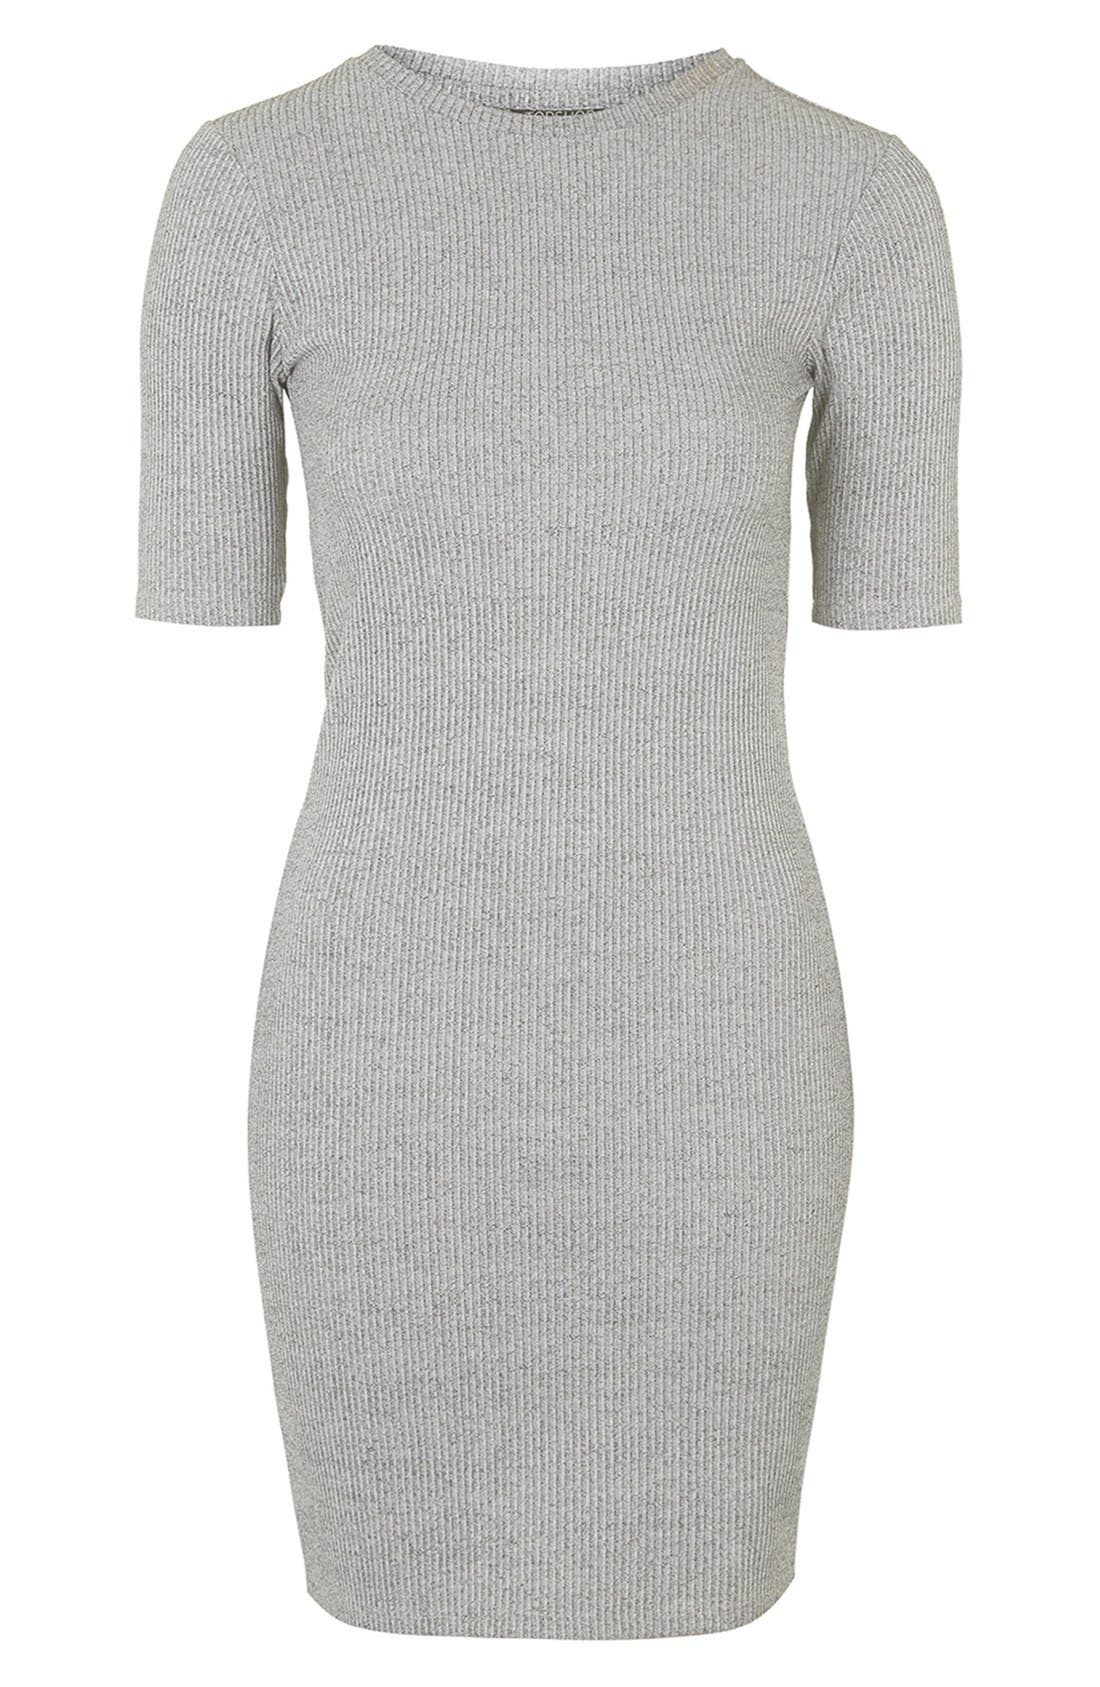 Alternate Image 1 Selected - Topshop Half Sleeve Ribbed Body-Con Dress